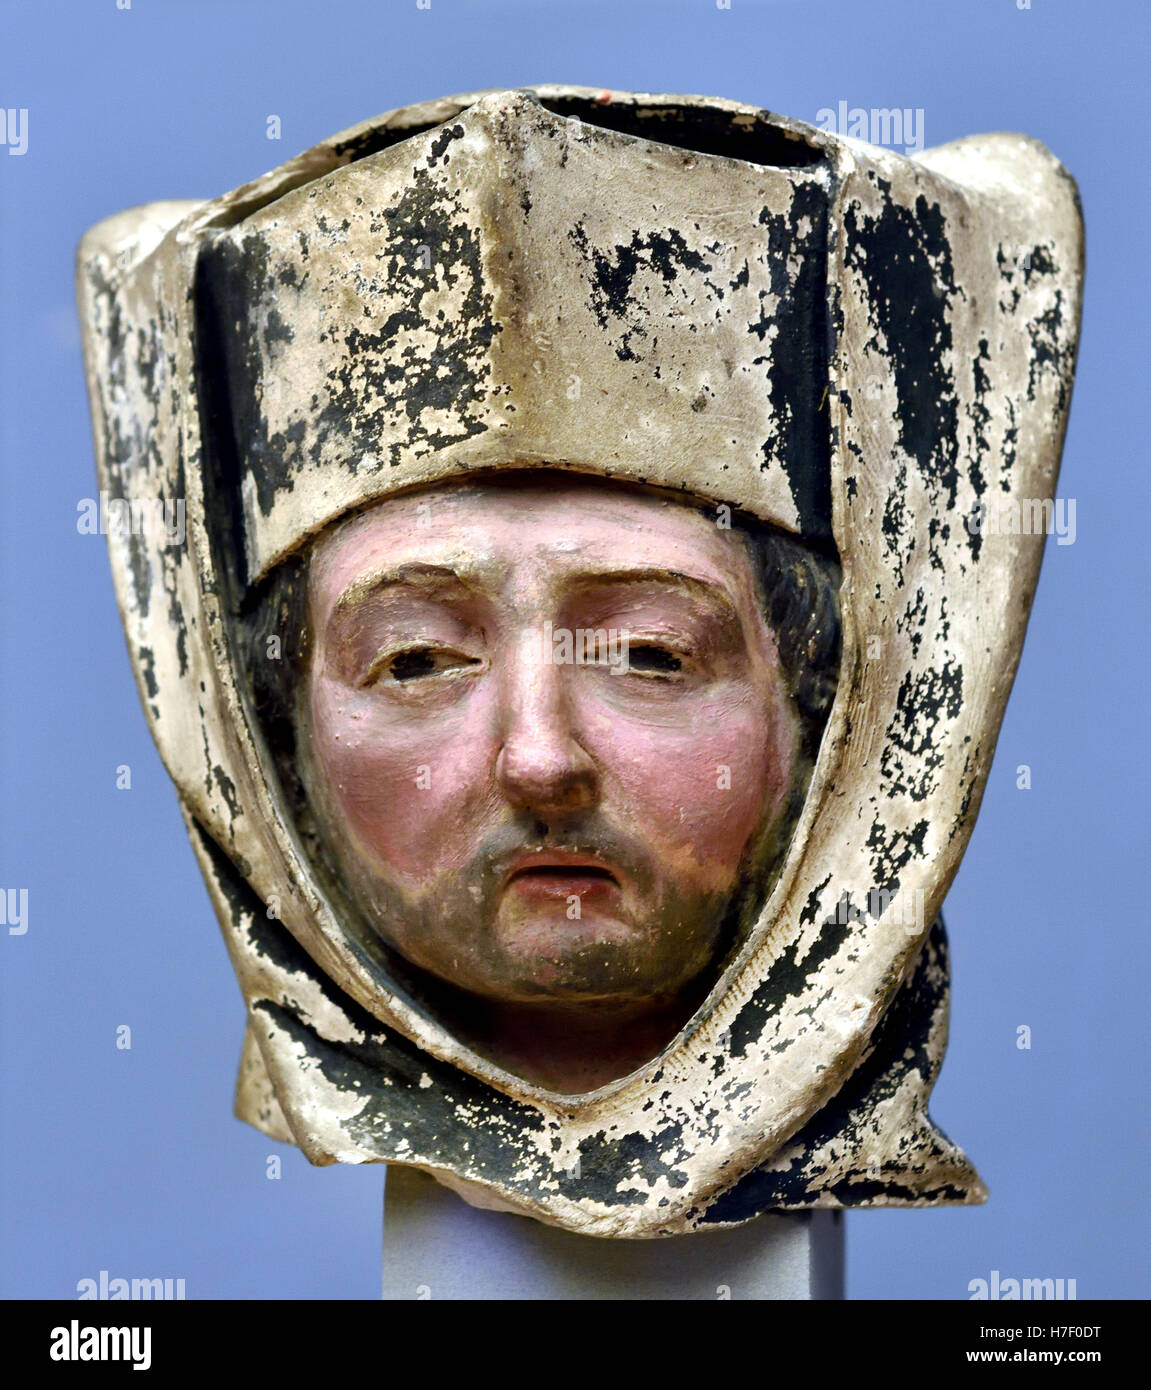 Head of a Clergyman 1450 ((Burnt clay, old version) France French - Stock Image